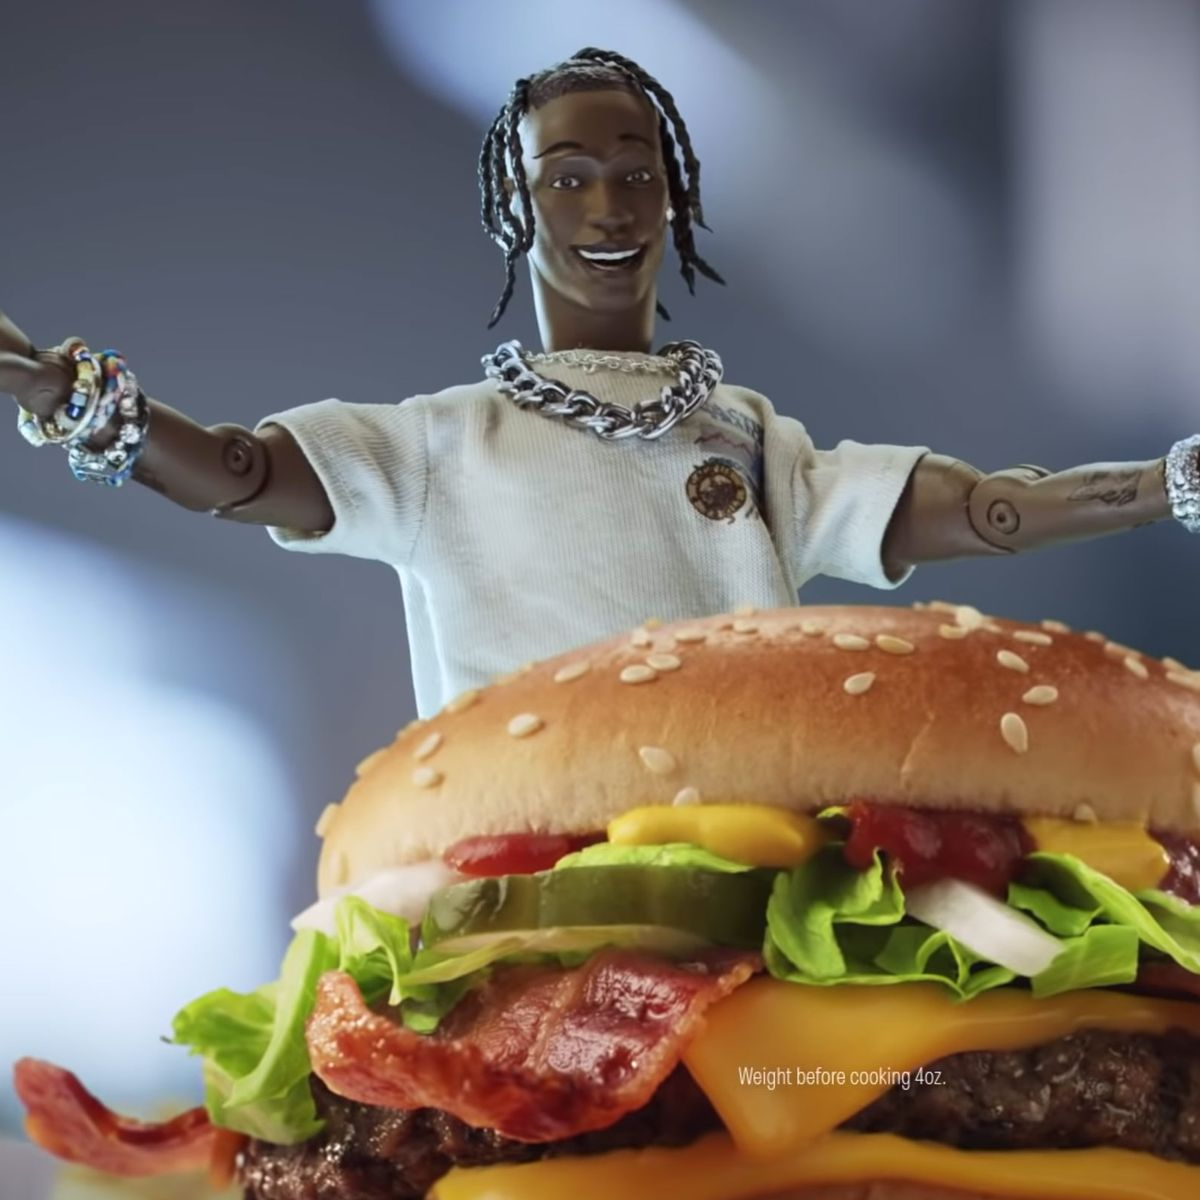 Travis Scott Meal at McDonald's: Price, Review, Details